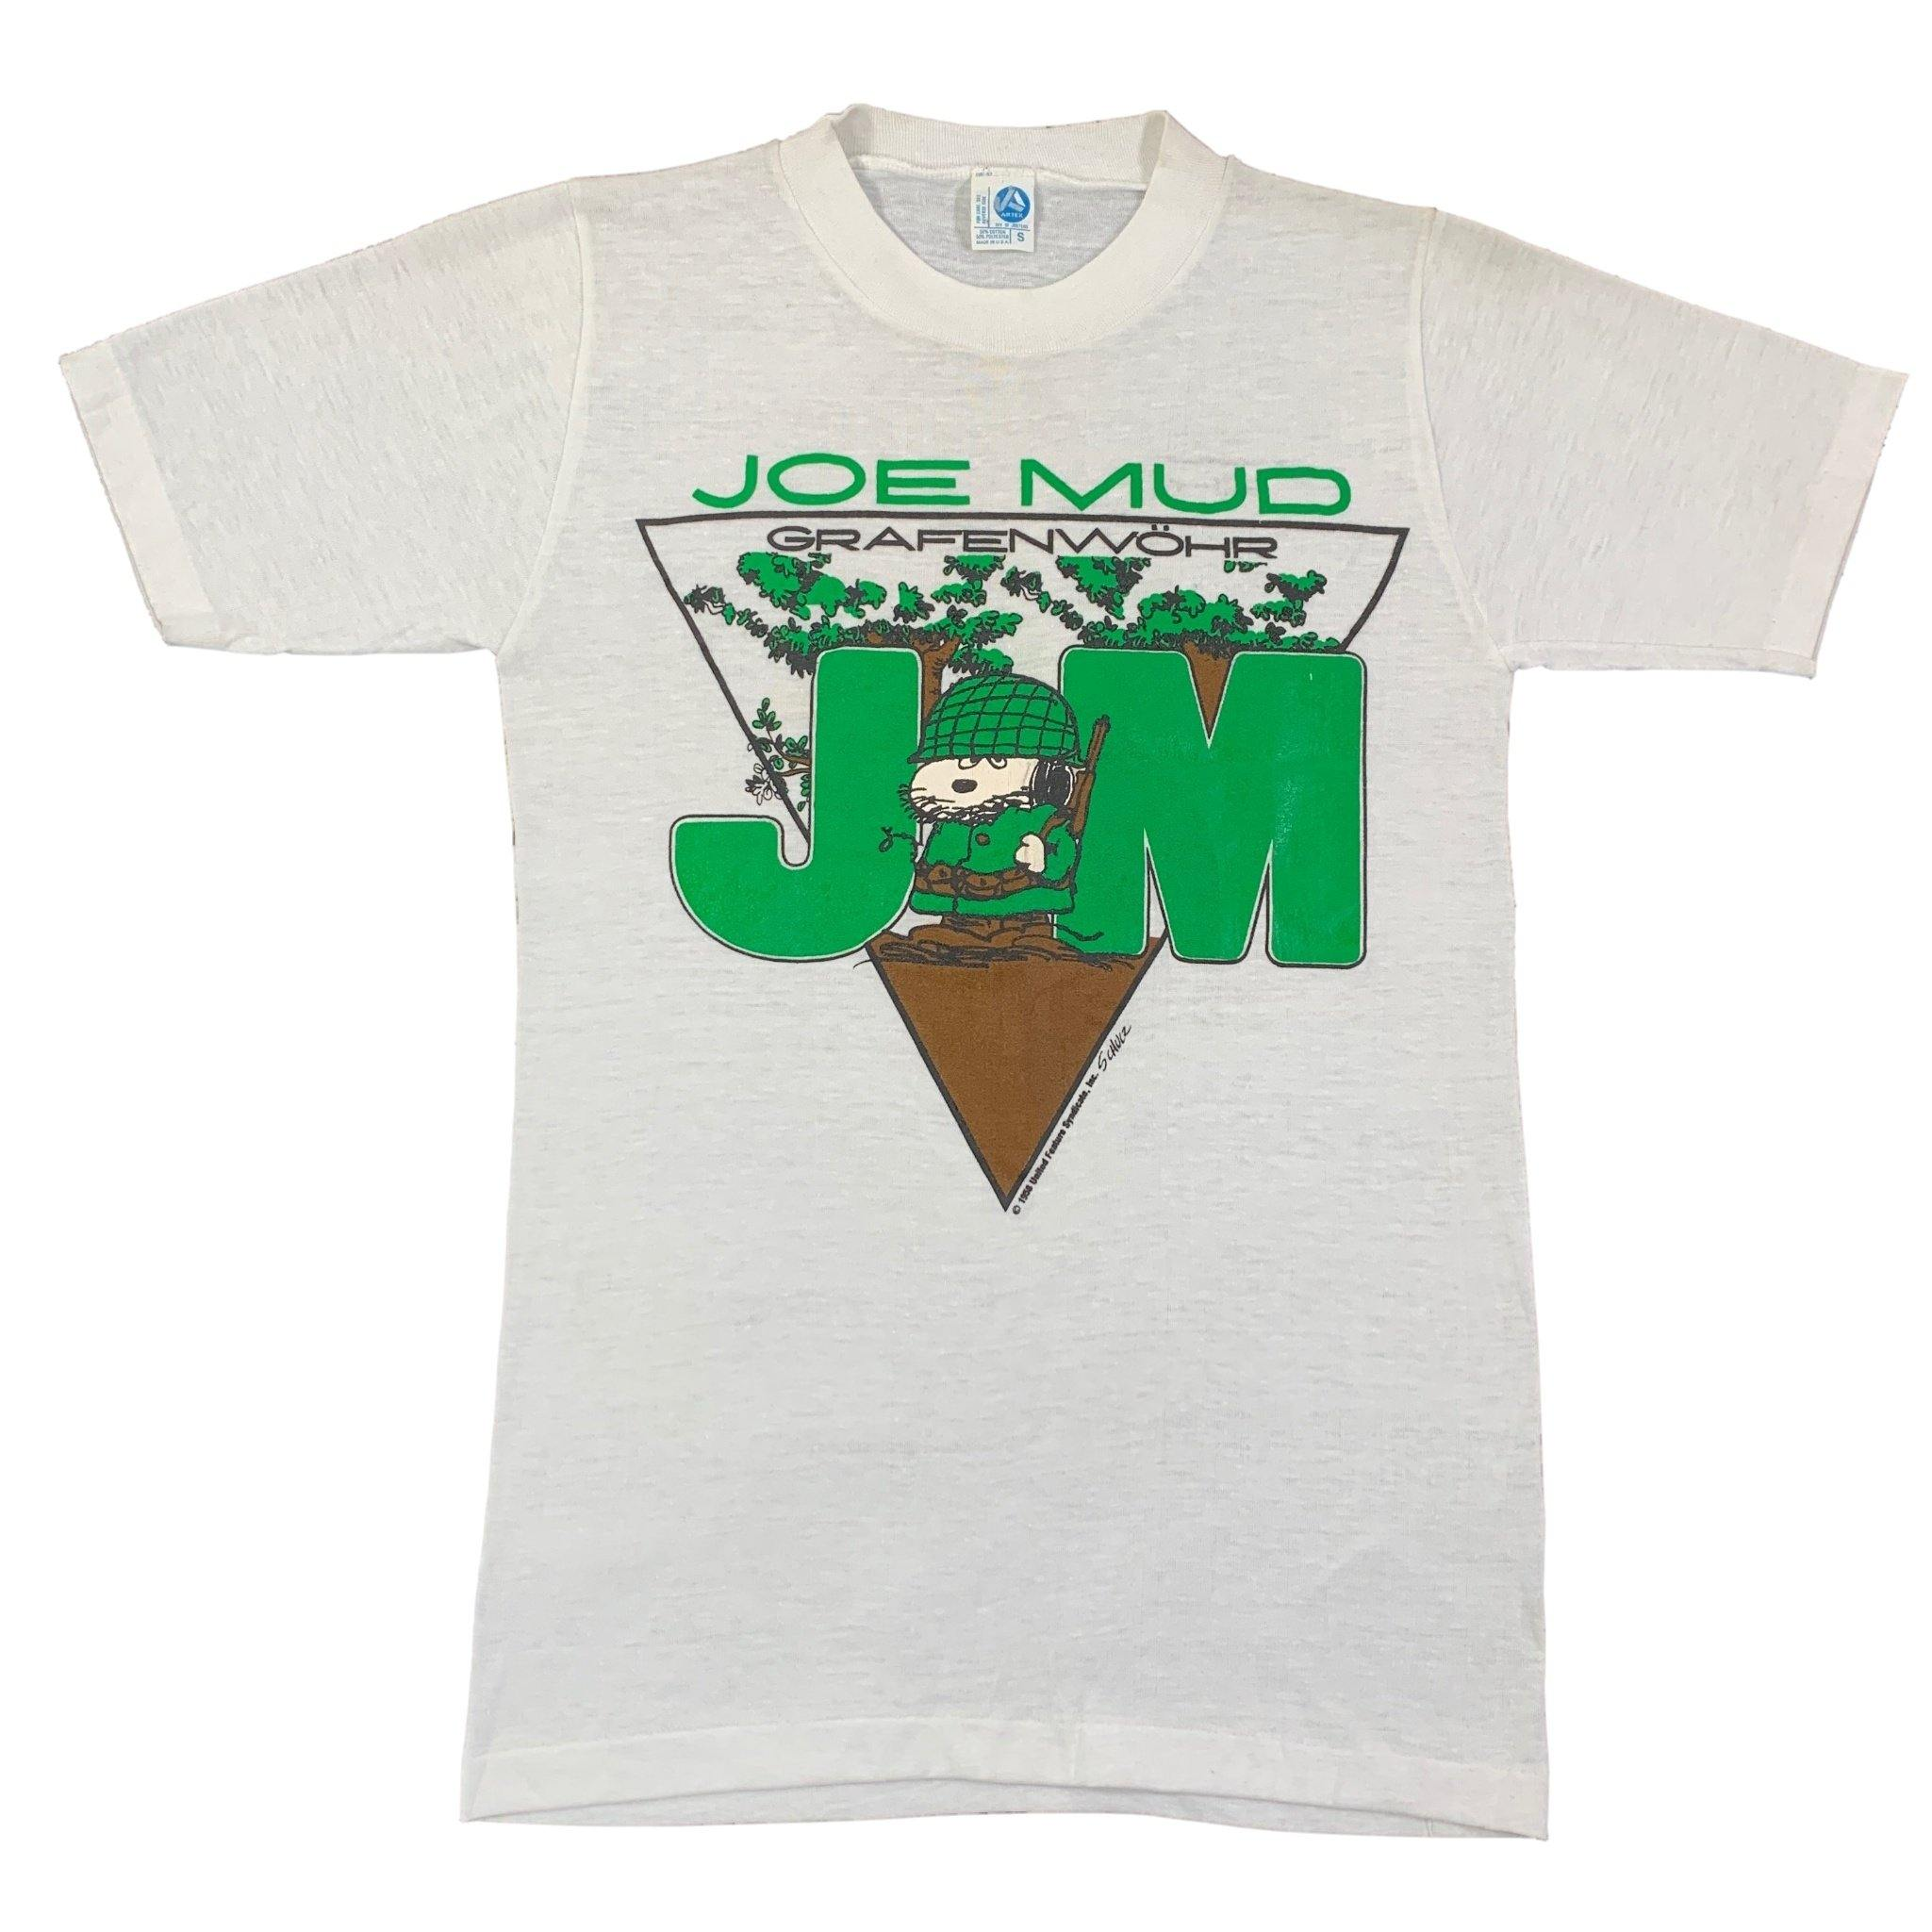 "Vintage Charles Schulz ""Joe Mud"" T-Shirt"